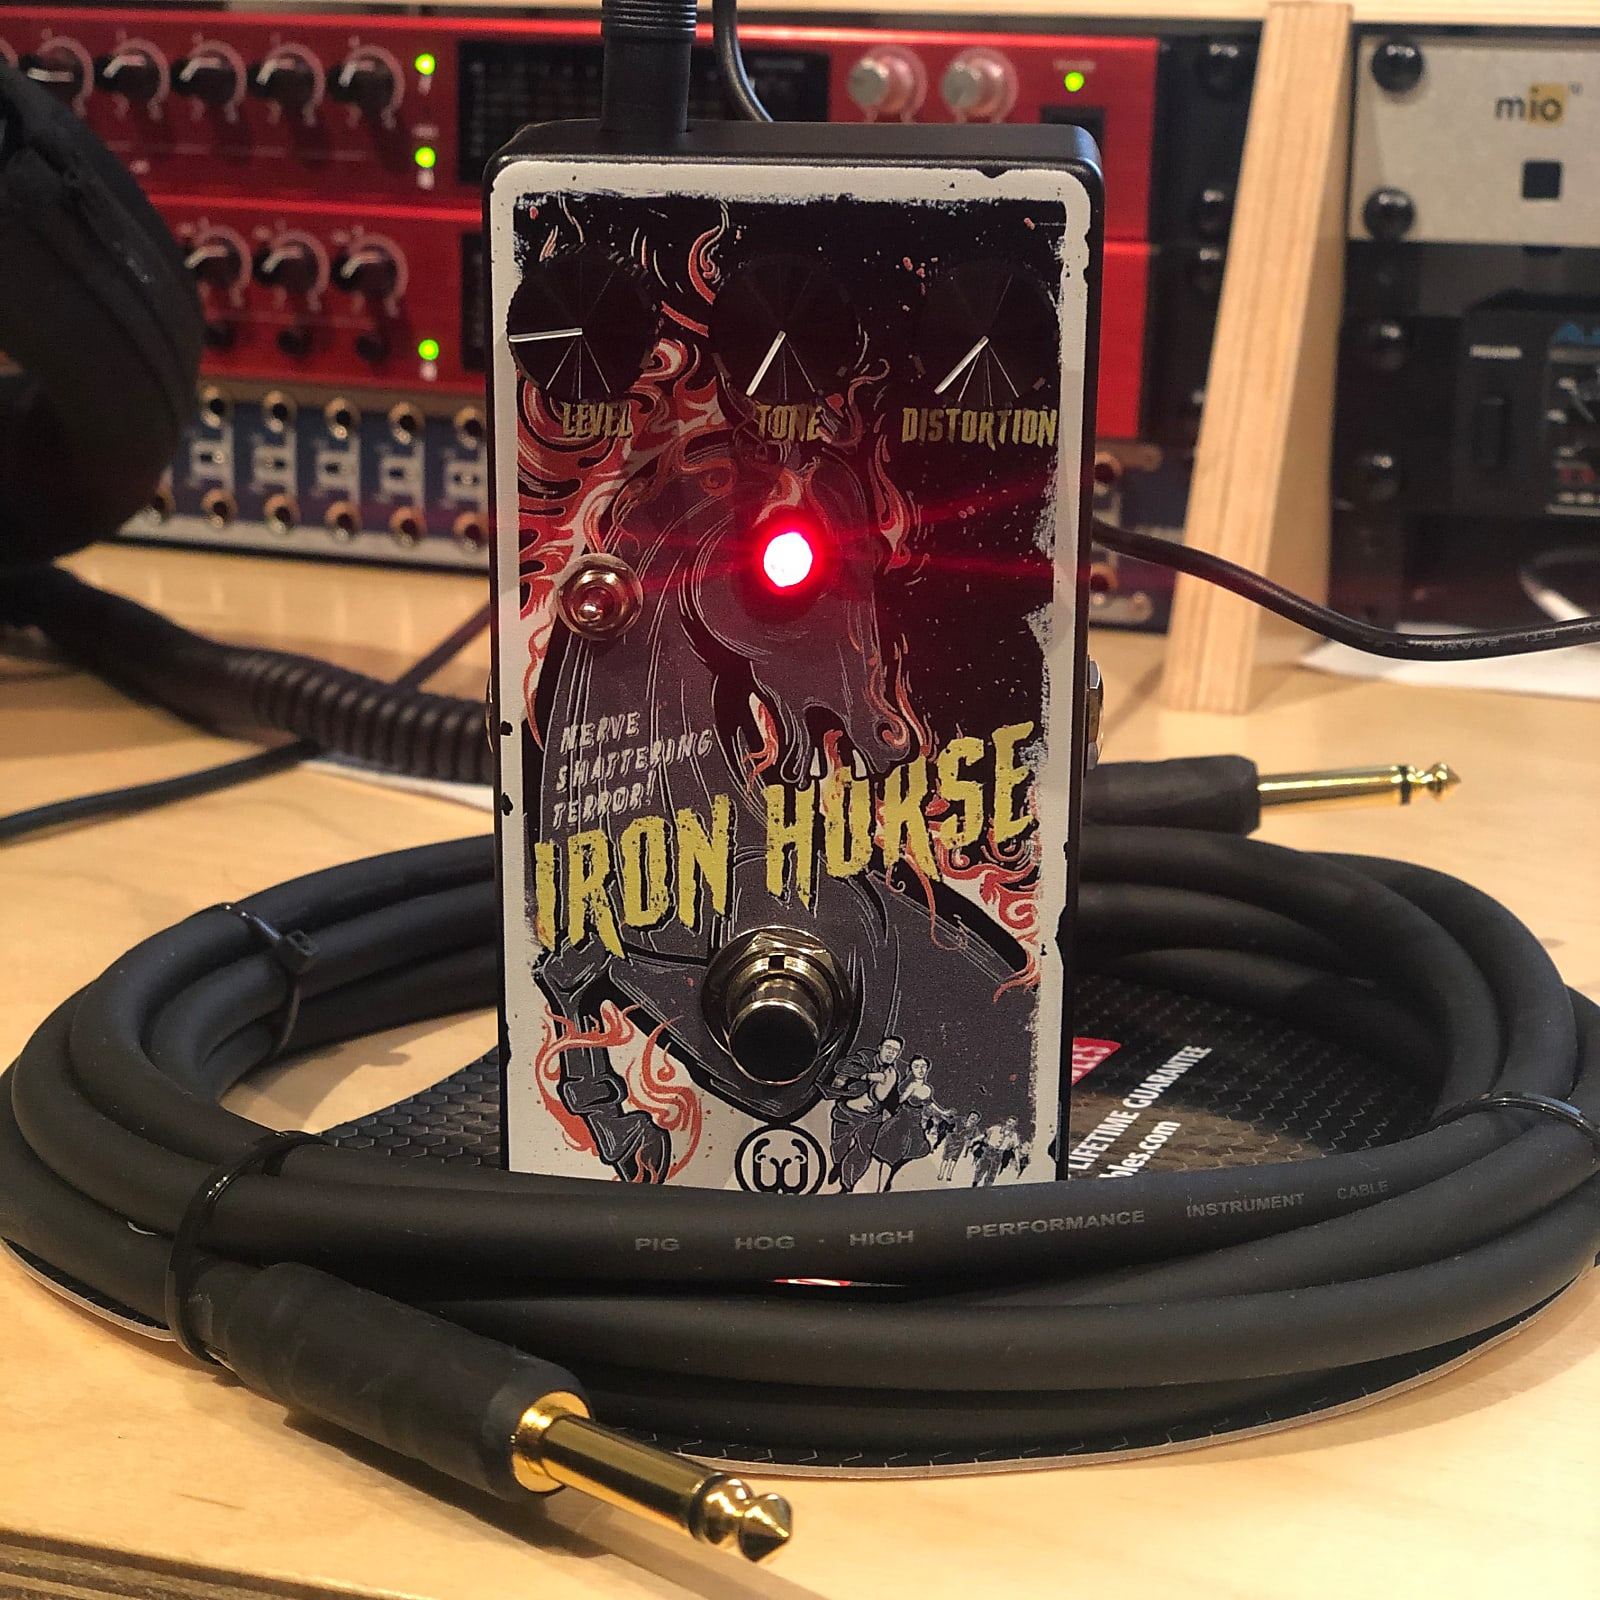 Walrus Audio Iron Horse Distortion V2 - Halloween 2019 Limited Edition, Free Poster